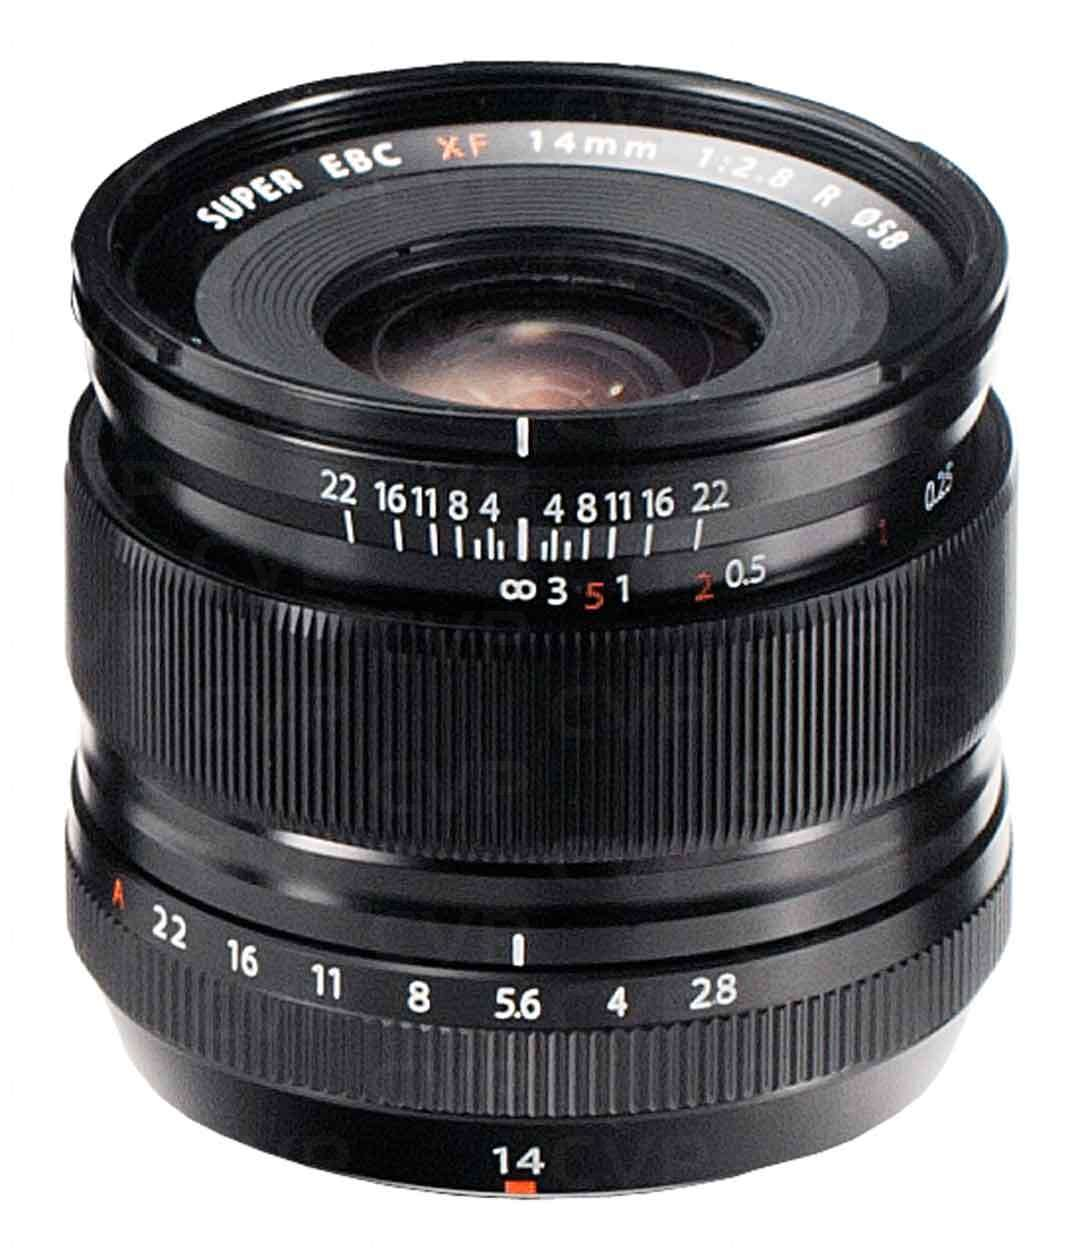 Fuji XF14mm f2.8 R Wide Angle Lens (New)